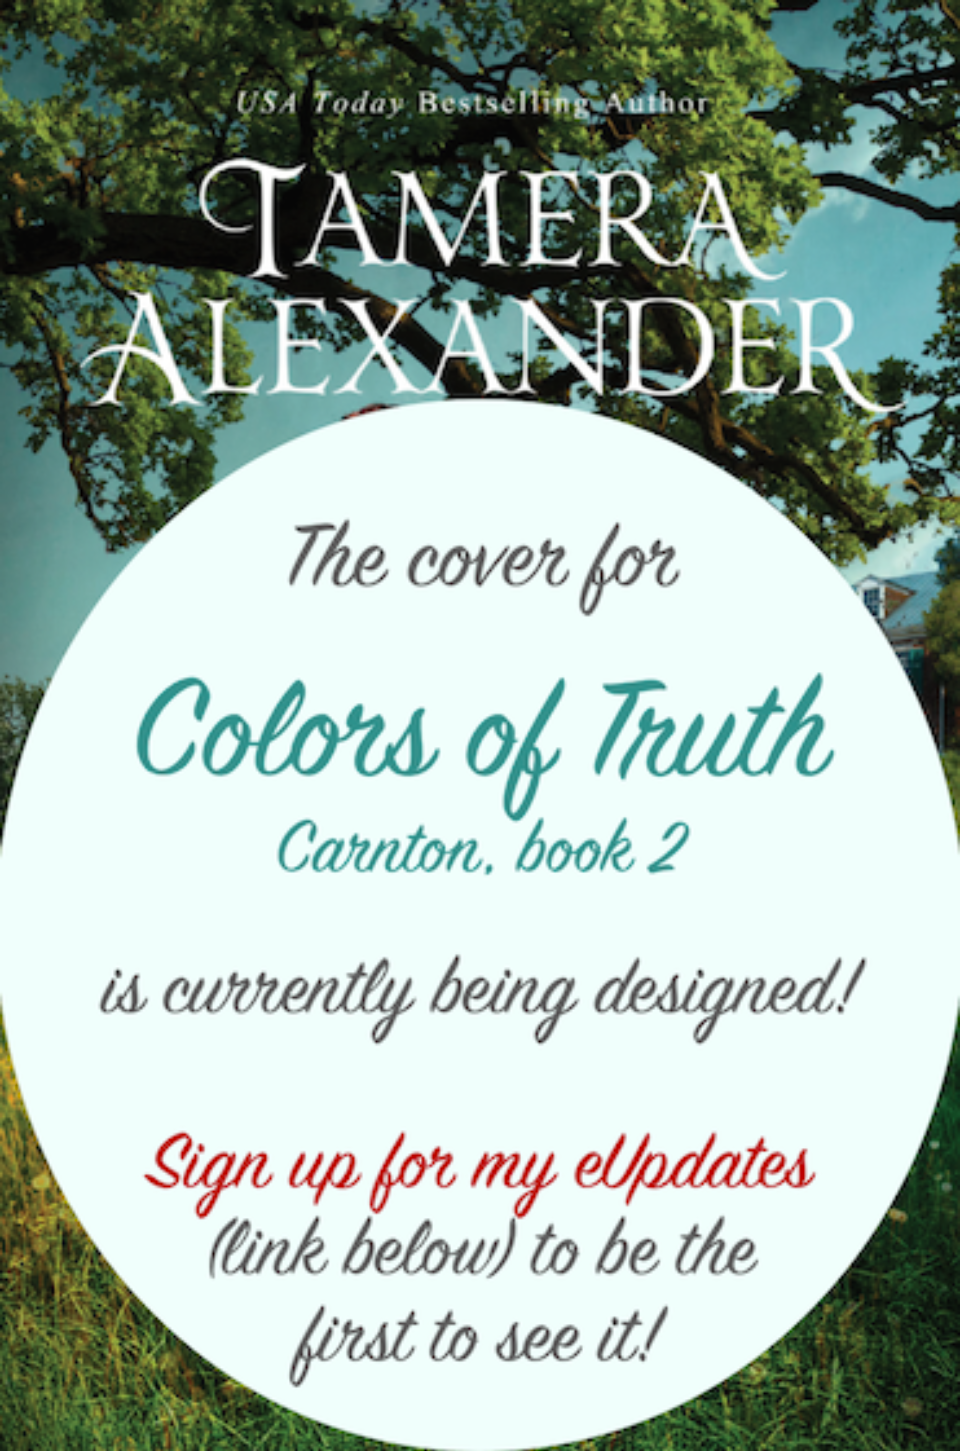 Colors of Truth, book 2 in the Carnton novels (coming Spring 2020) CLICK to sign up for my eUpdates and I'll reach out when it releases!